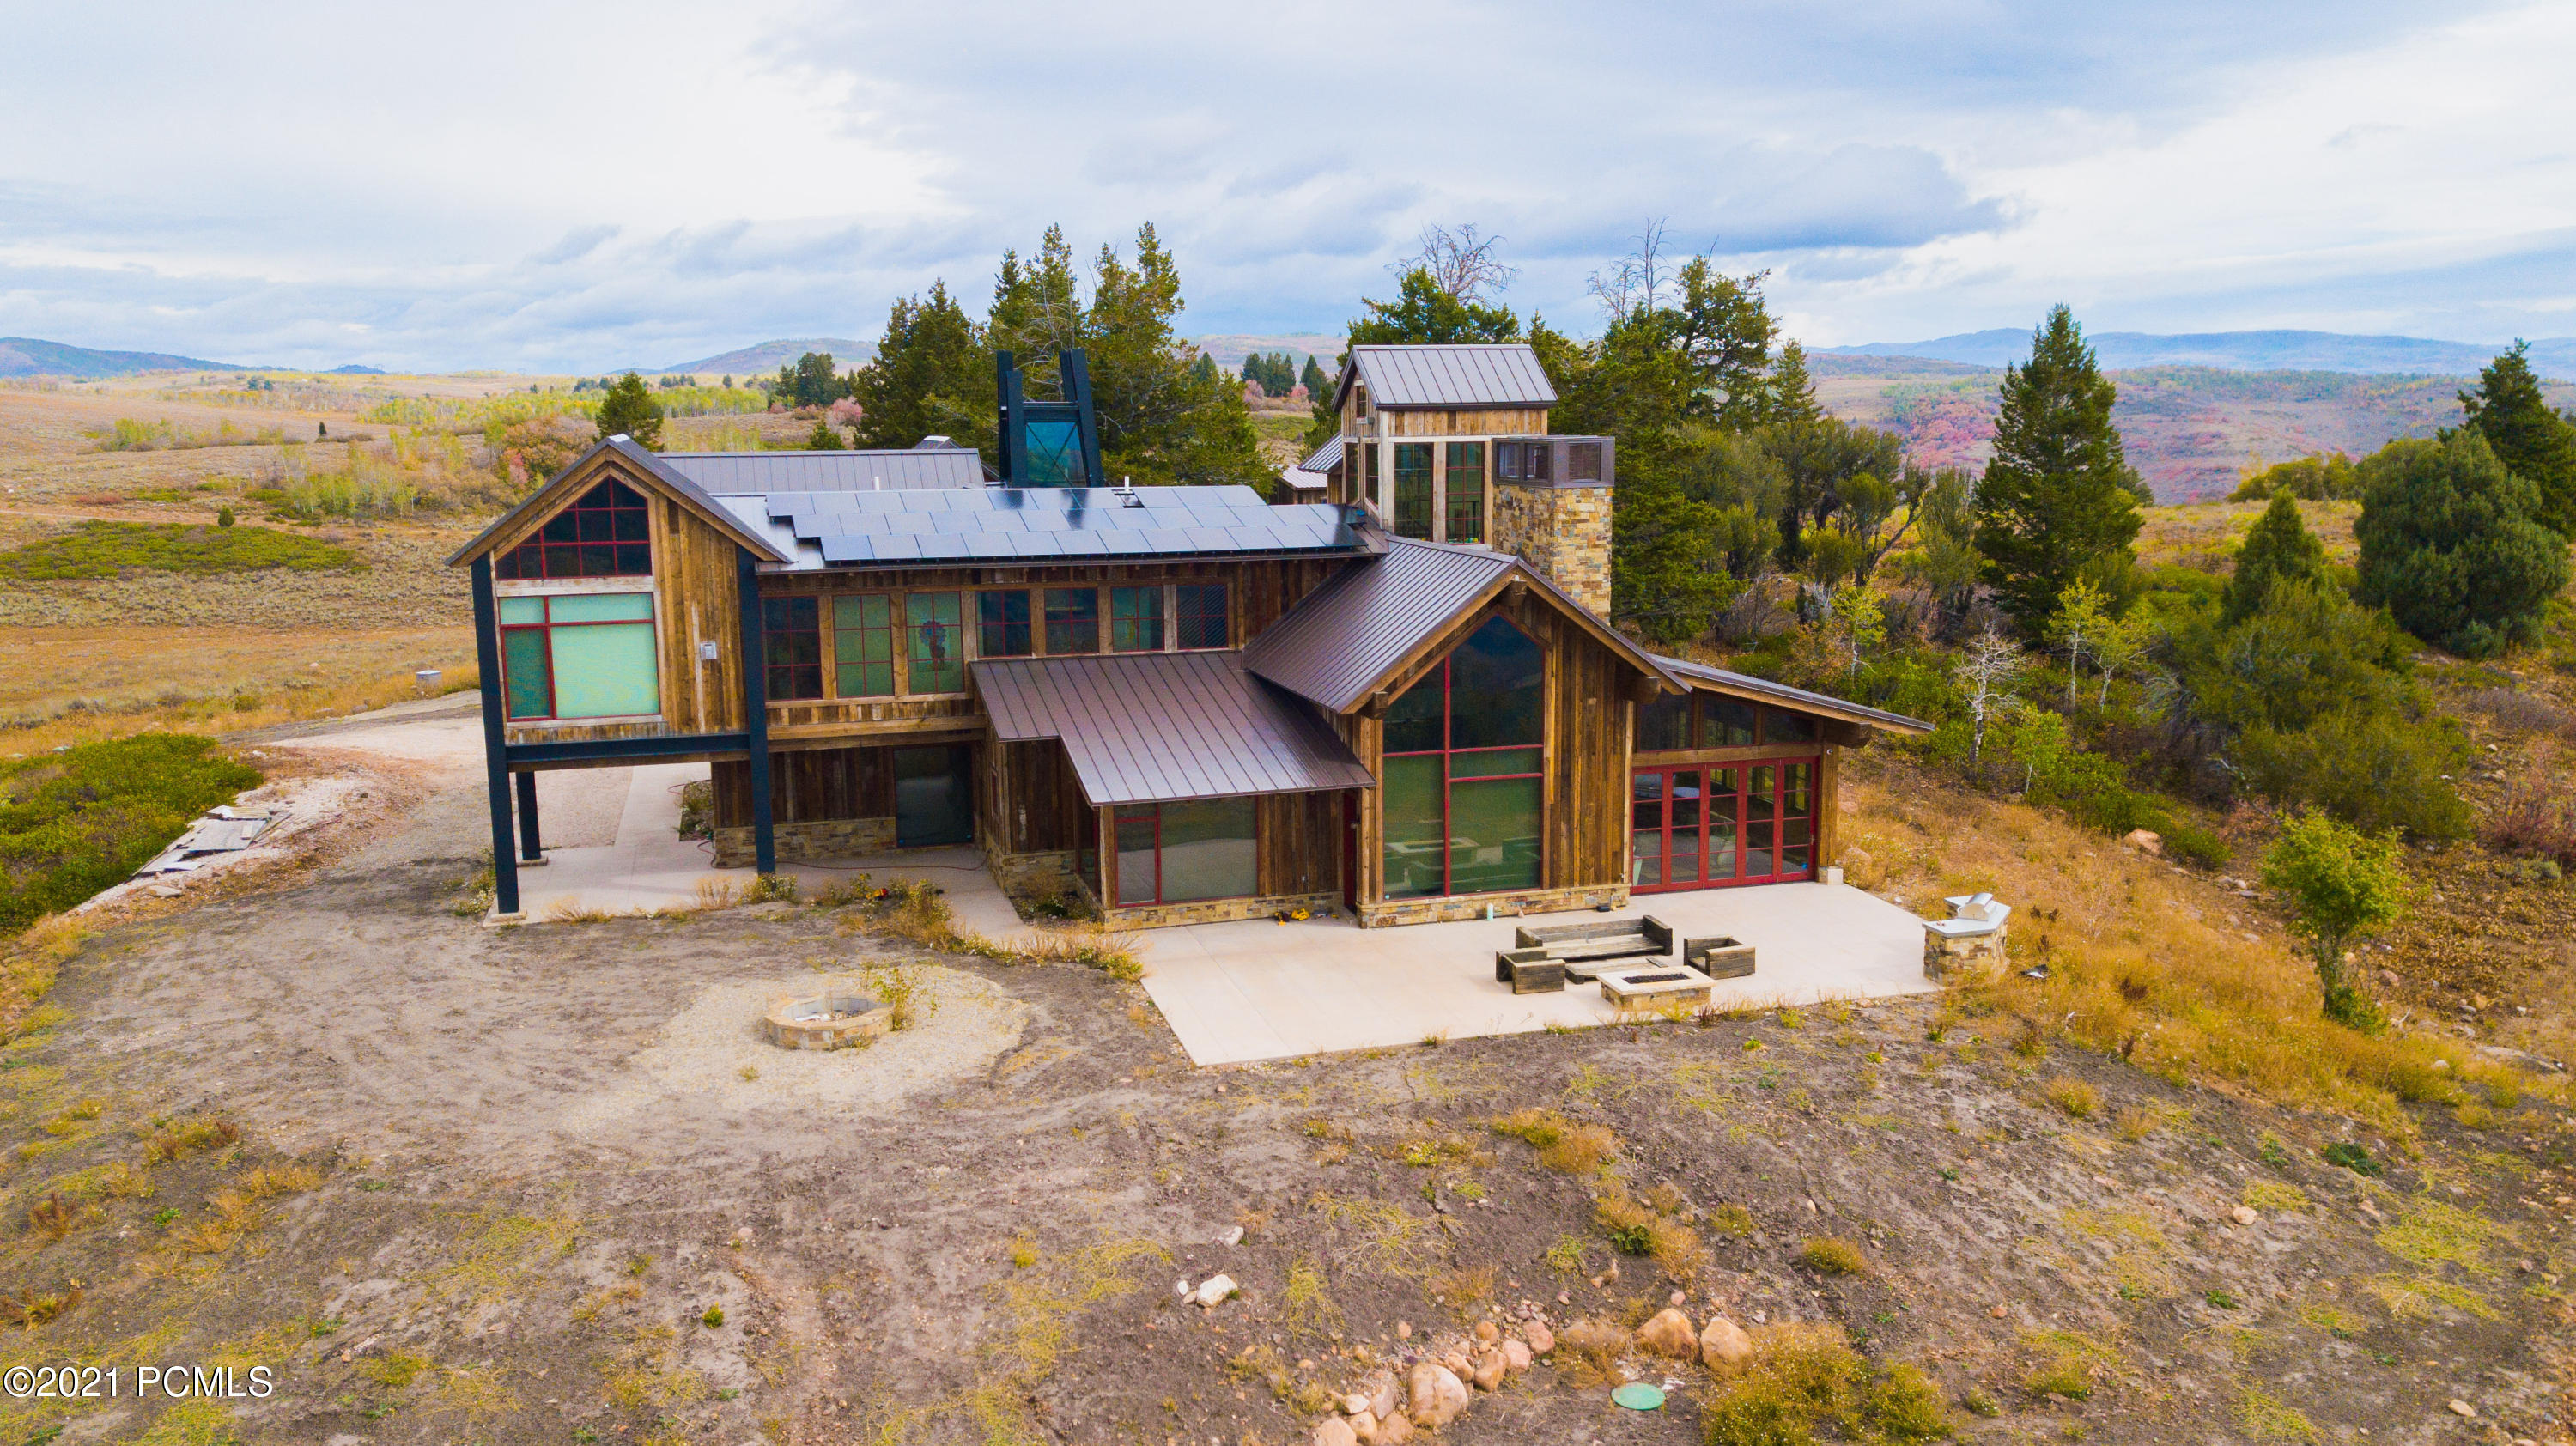 3930 Middle Fork Drive Drive, Huntsville, Utah 84317, 4 Bedrooms Bedrooms, ,4 BathroomsBathrooms,Single Family,For Sale,Middle Fork Drive,12000005